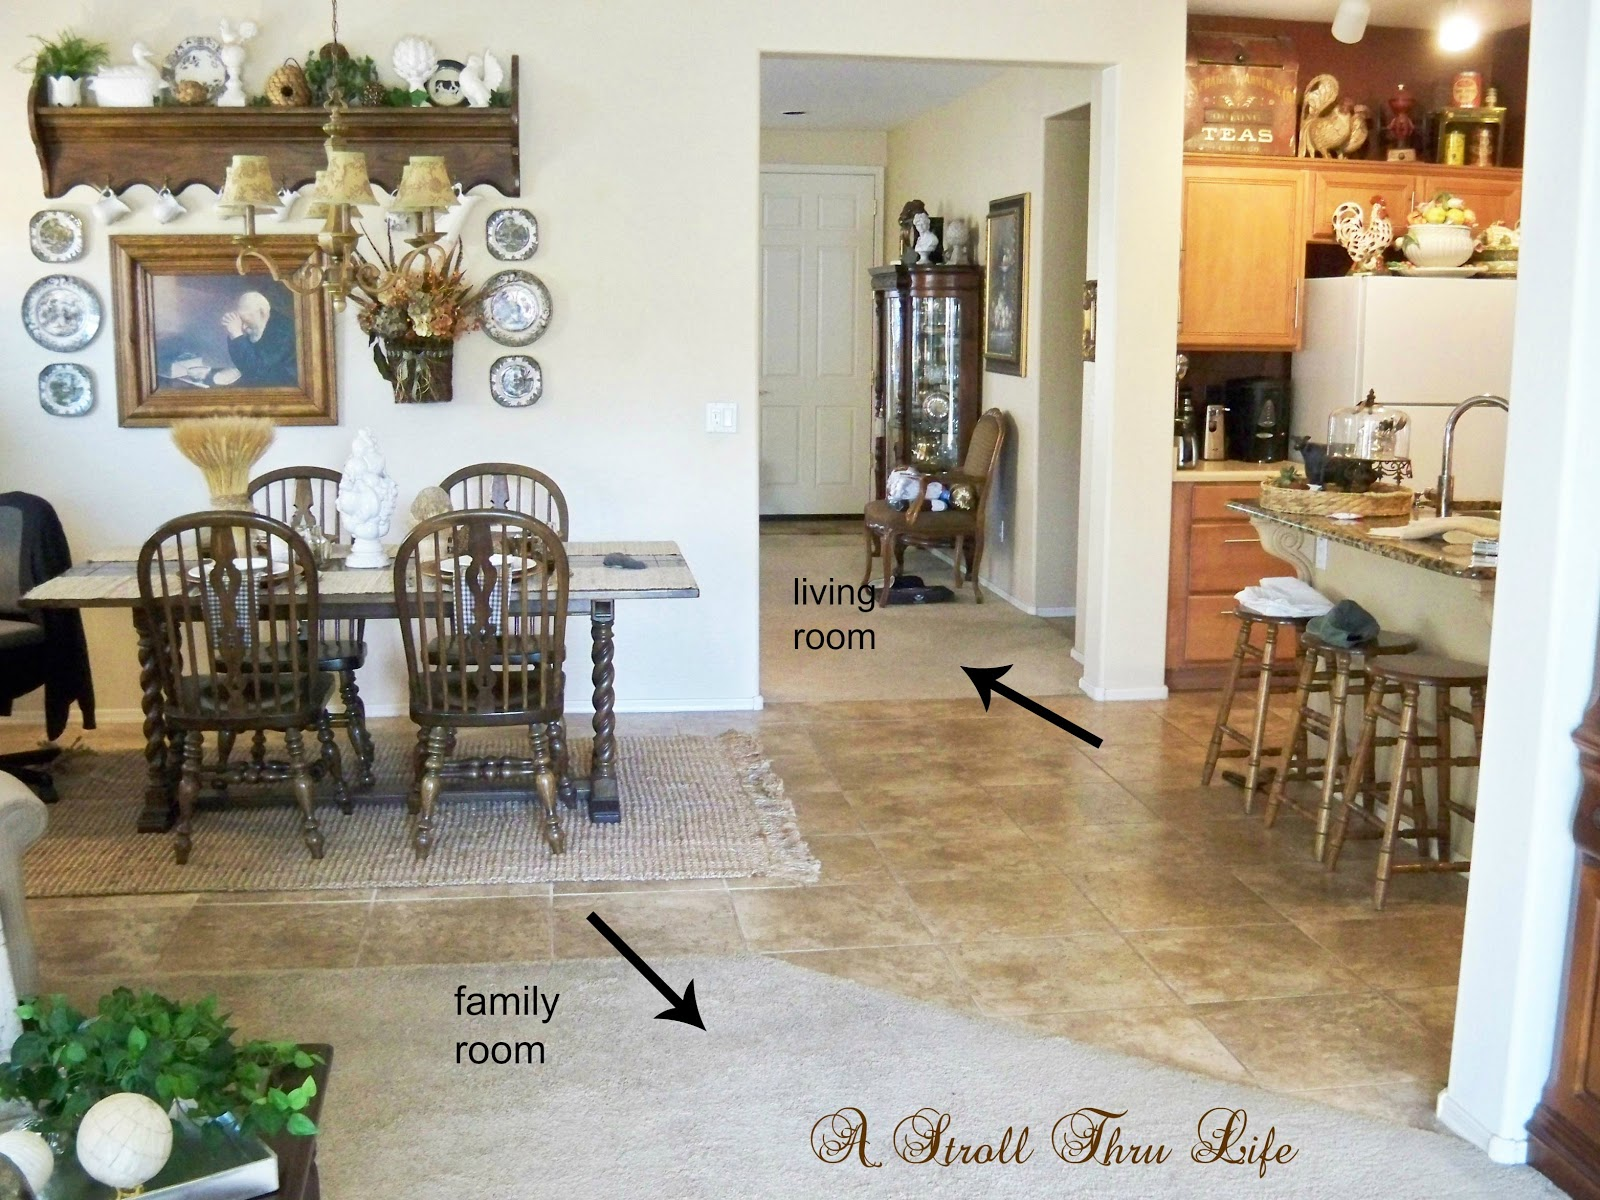 A stroll thru life the makeover begins i need your input for Flooring transition from kitchen to family room